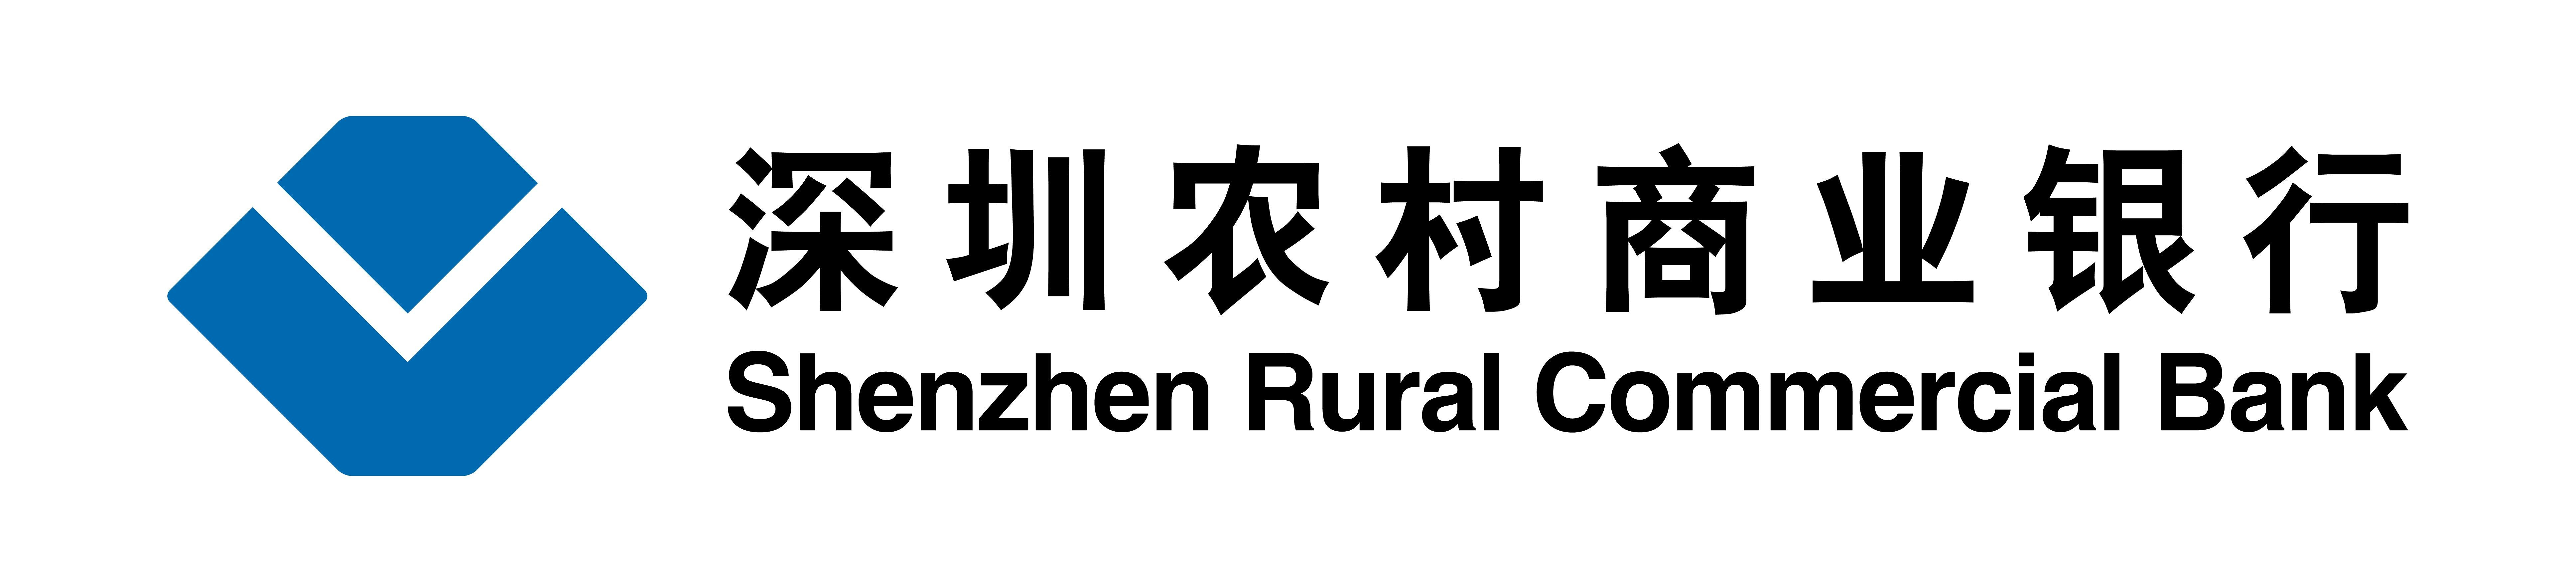 SHENZHEN RURAL COMMERCIAL BANK Logo